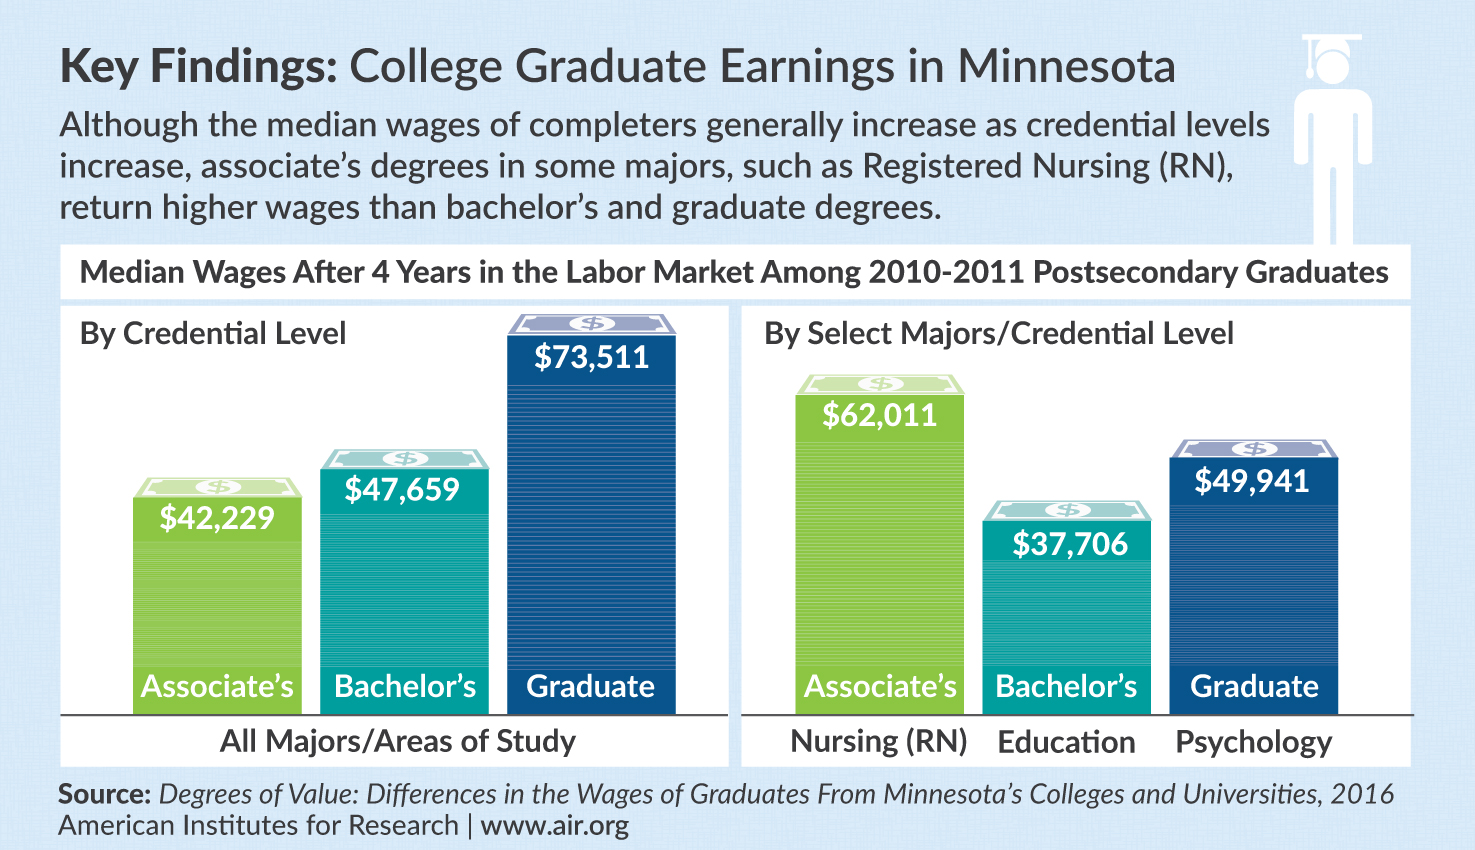 Infographic compares the median wages after 4 years in the labor market among 2010-2011 postsecondary graduates